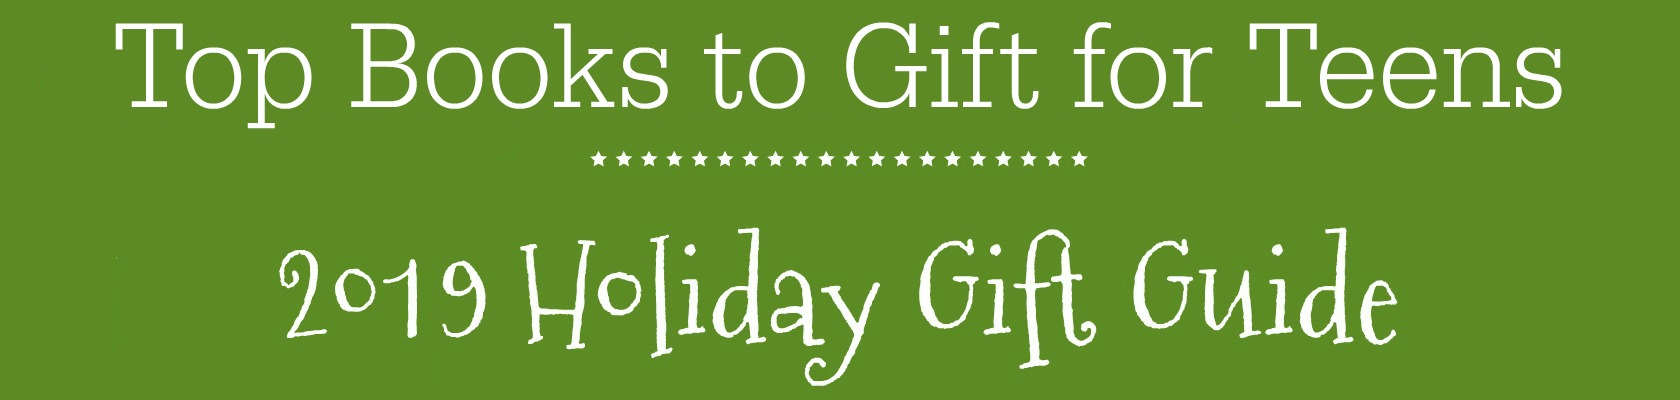 Books for Teens Holiday Gift Guide